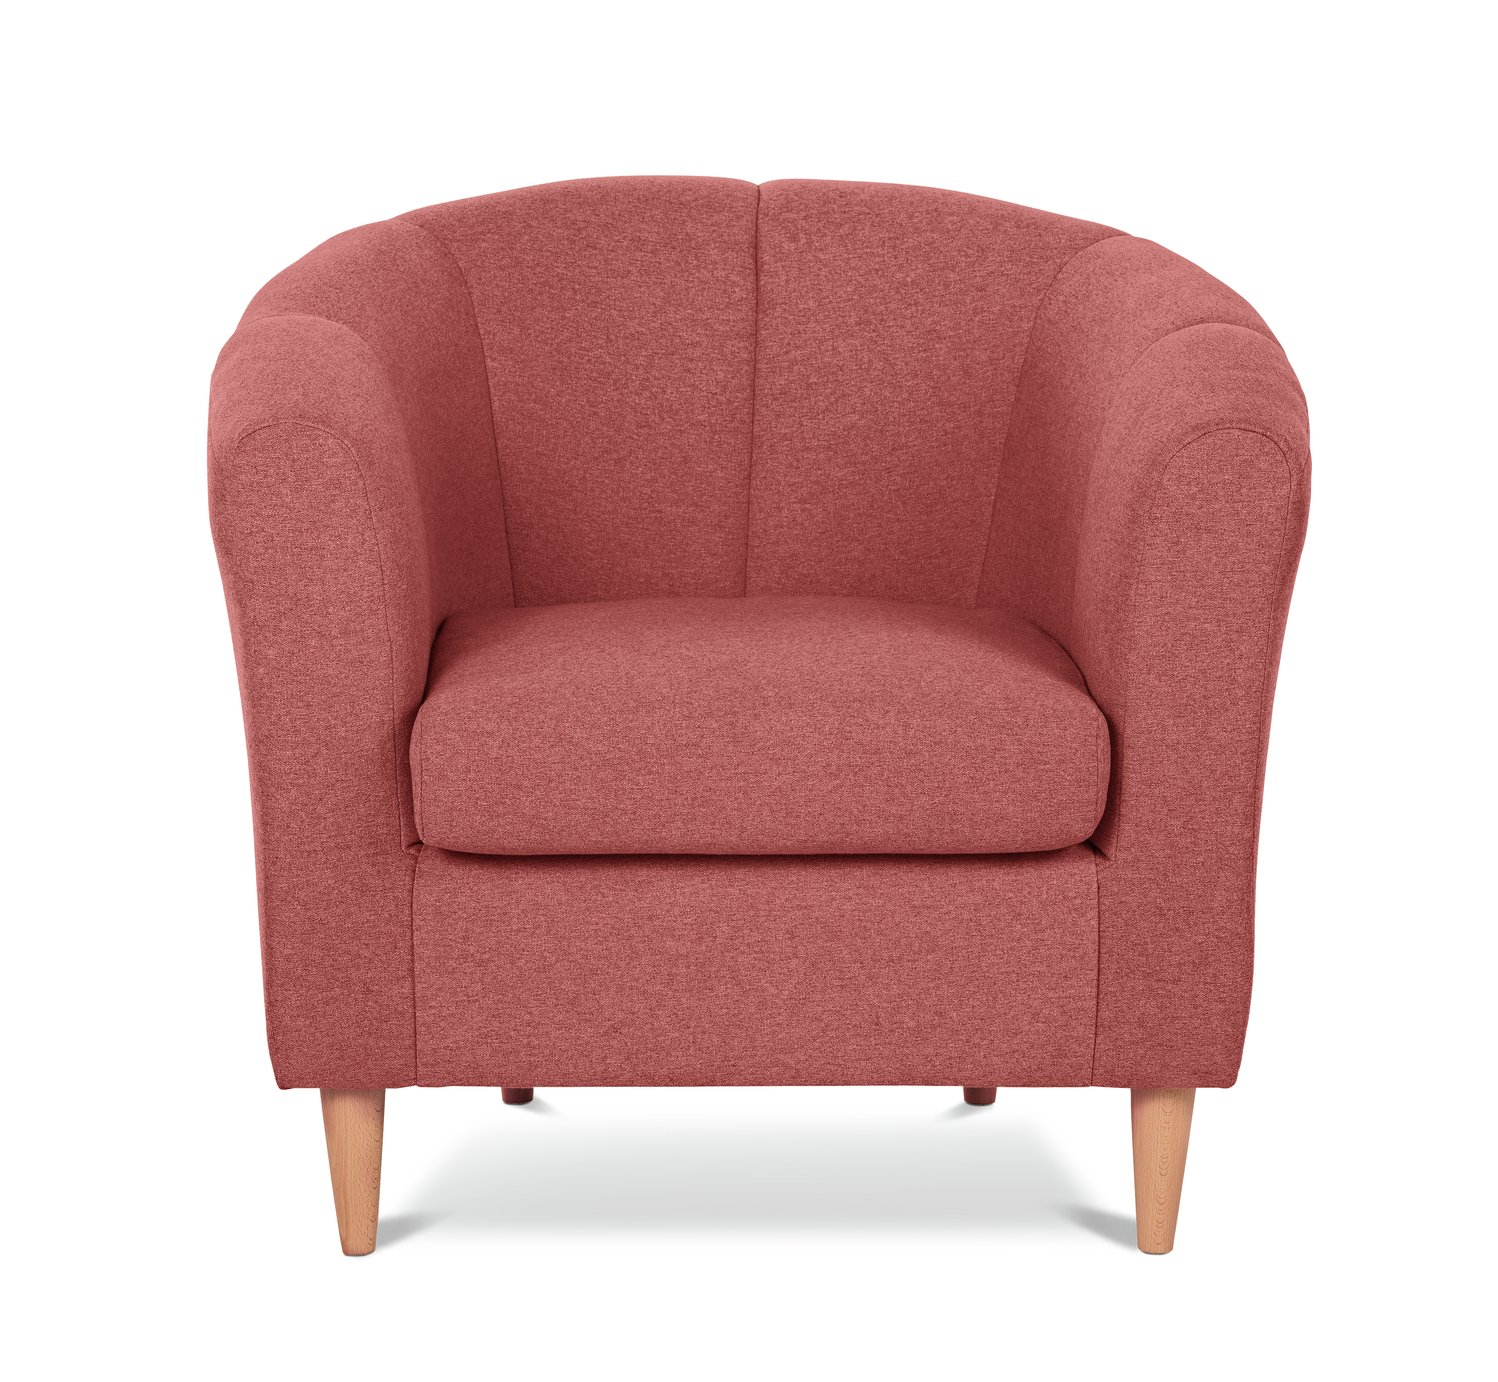 Argos Home Ayres Fabric Tub Chair - Coral